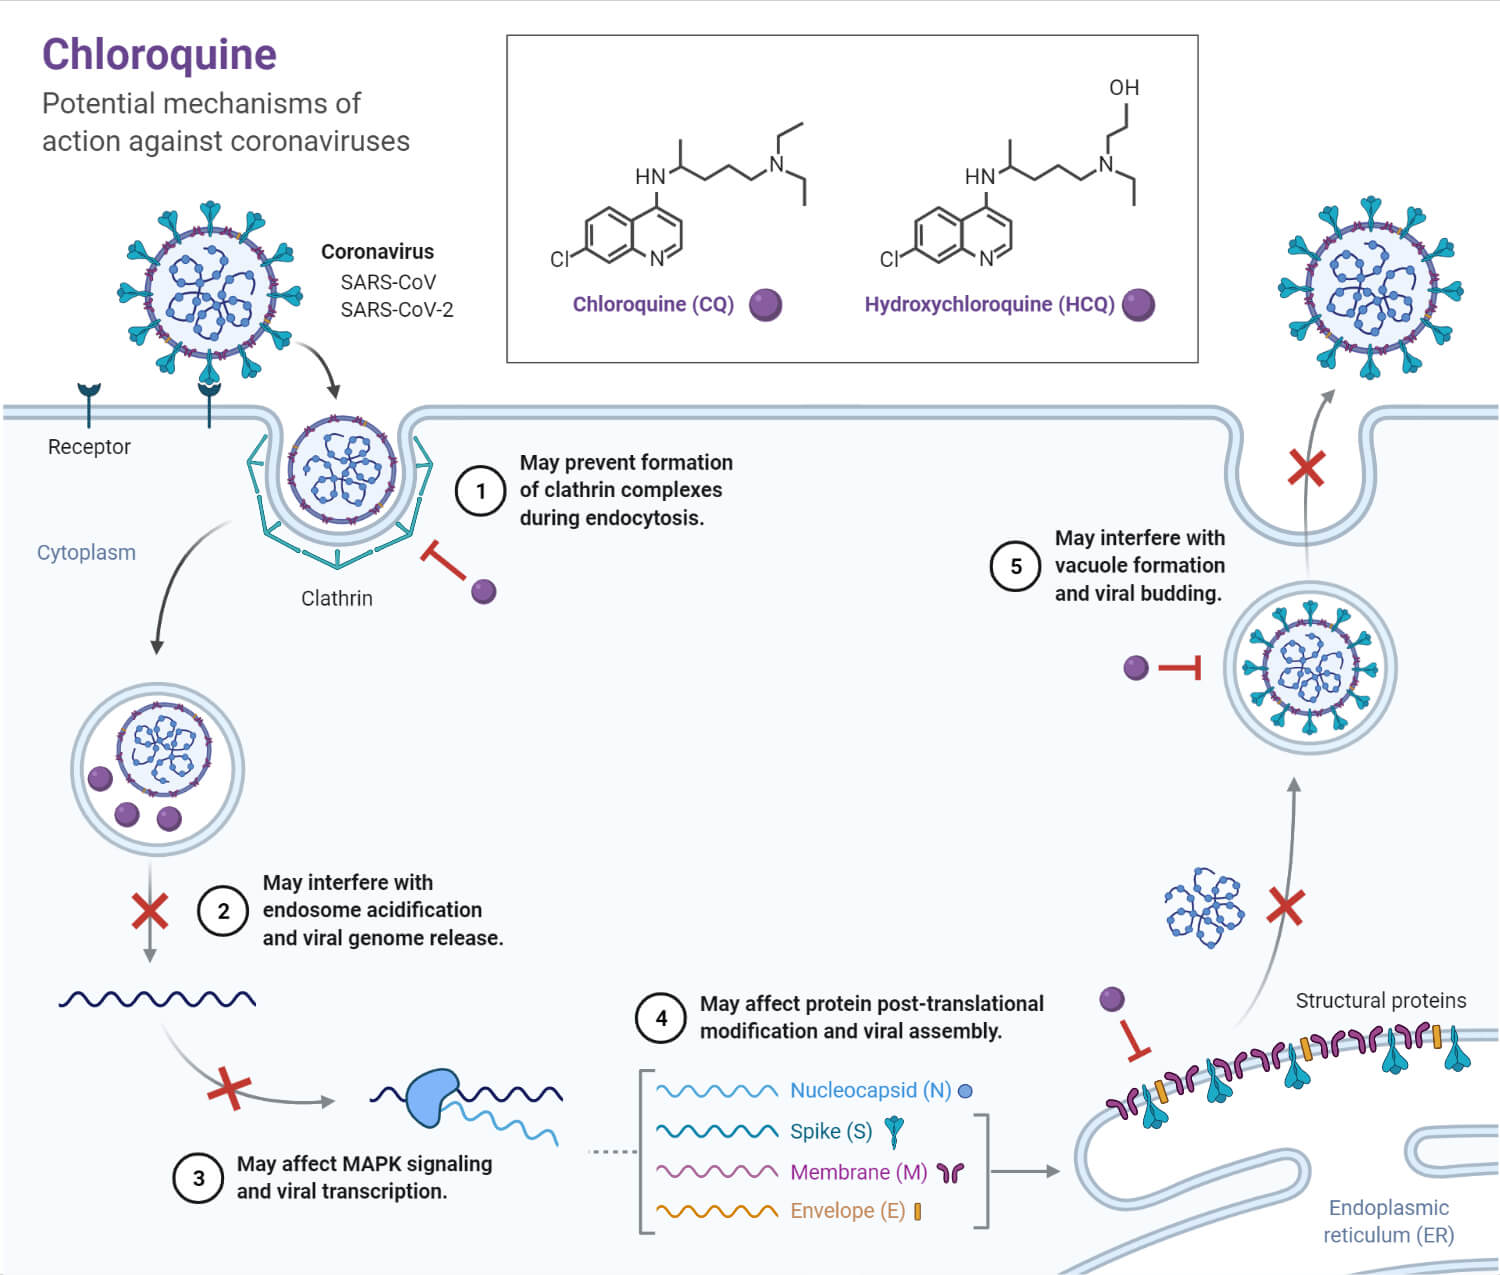 Chloroquine_ Potential Mechanisms of Action Against Coronaviruses